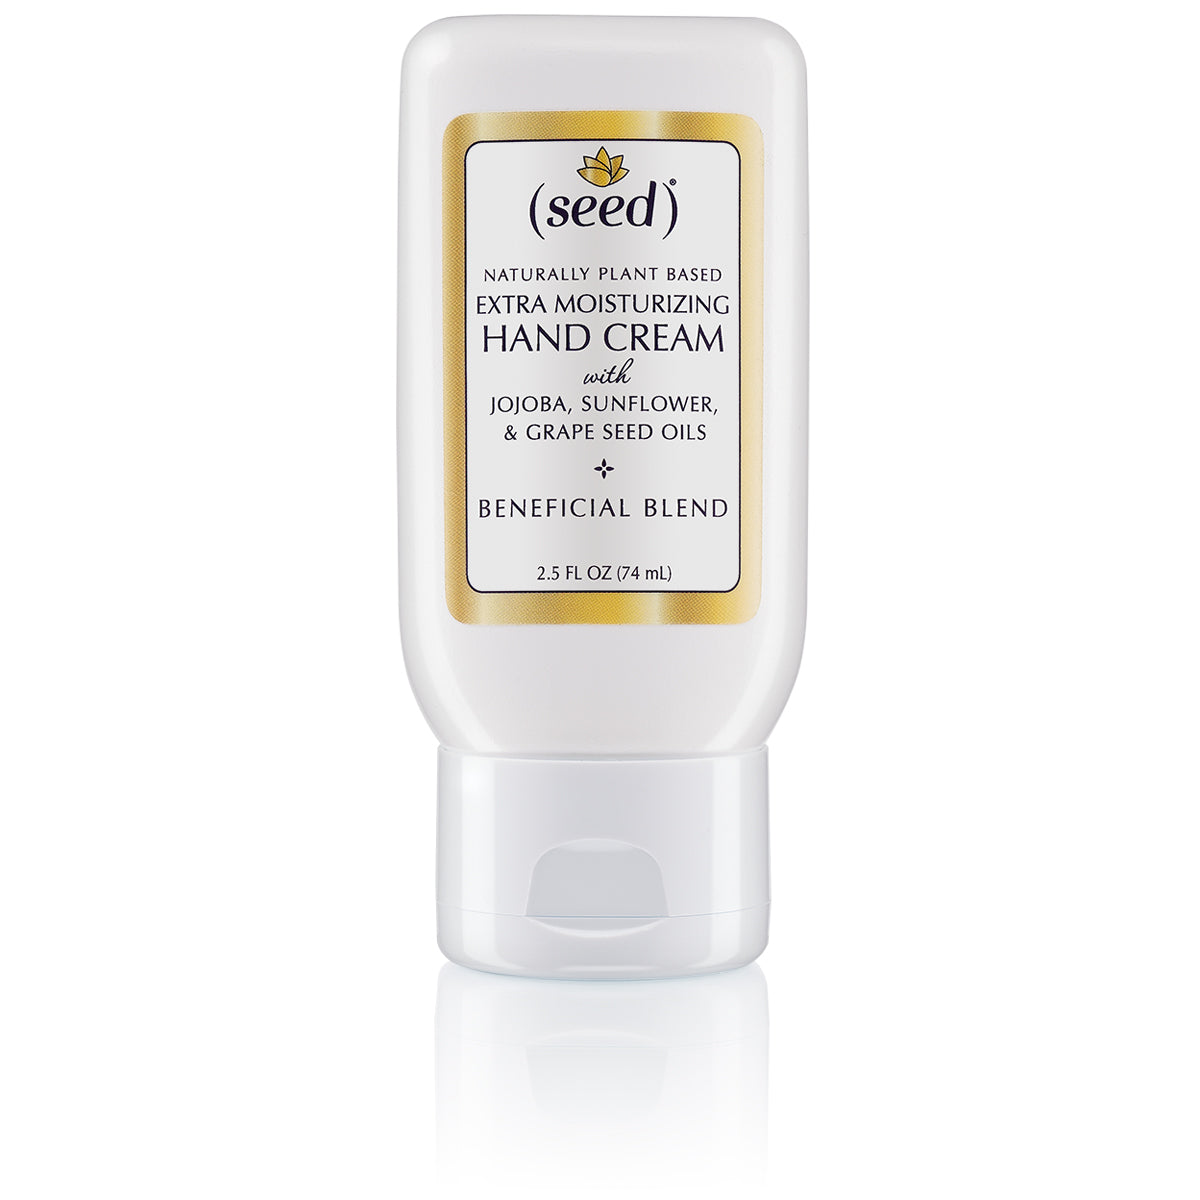 Seed Extra Moisturizing Hand Cream soothes, softens, protects, and holds up to frequent hand washing